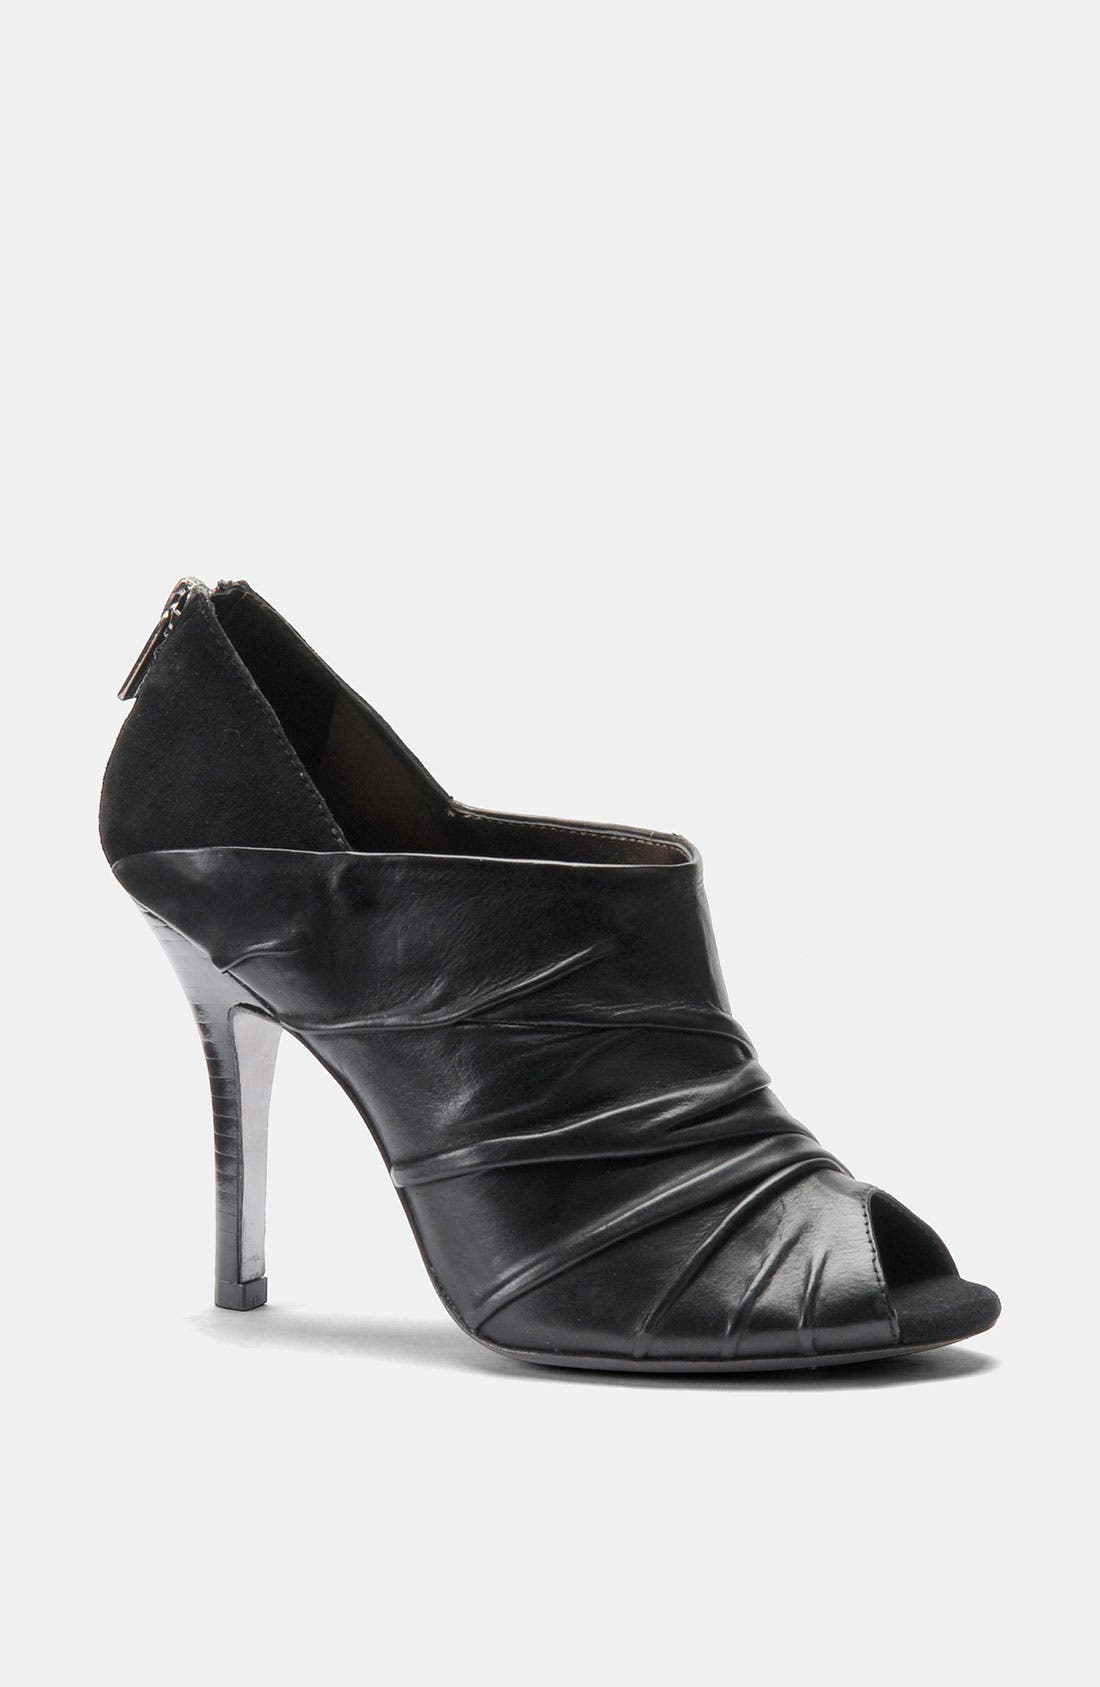 Alternate Image 1 Selected - Isolá 'Bade' Open Toe Pump